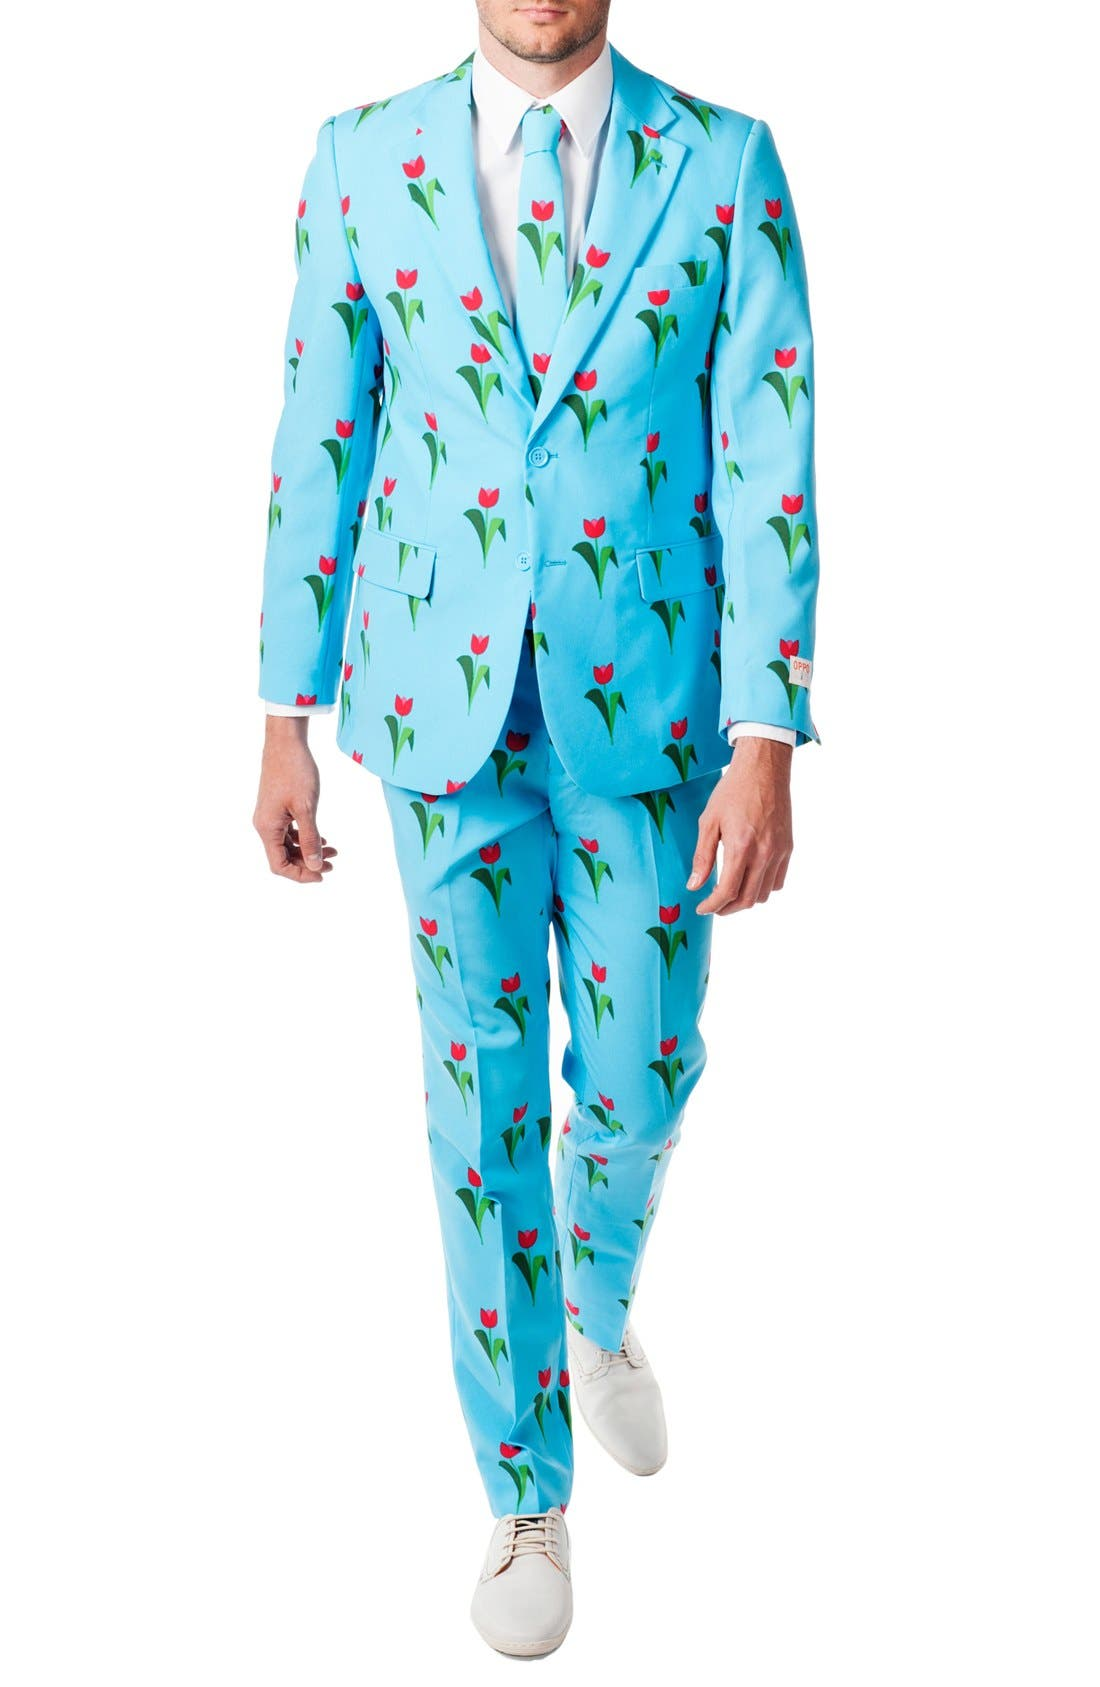 OppoSuits 'Tulips from Amsterdam' Trim Fit Two-Piece Suit with Tie